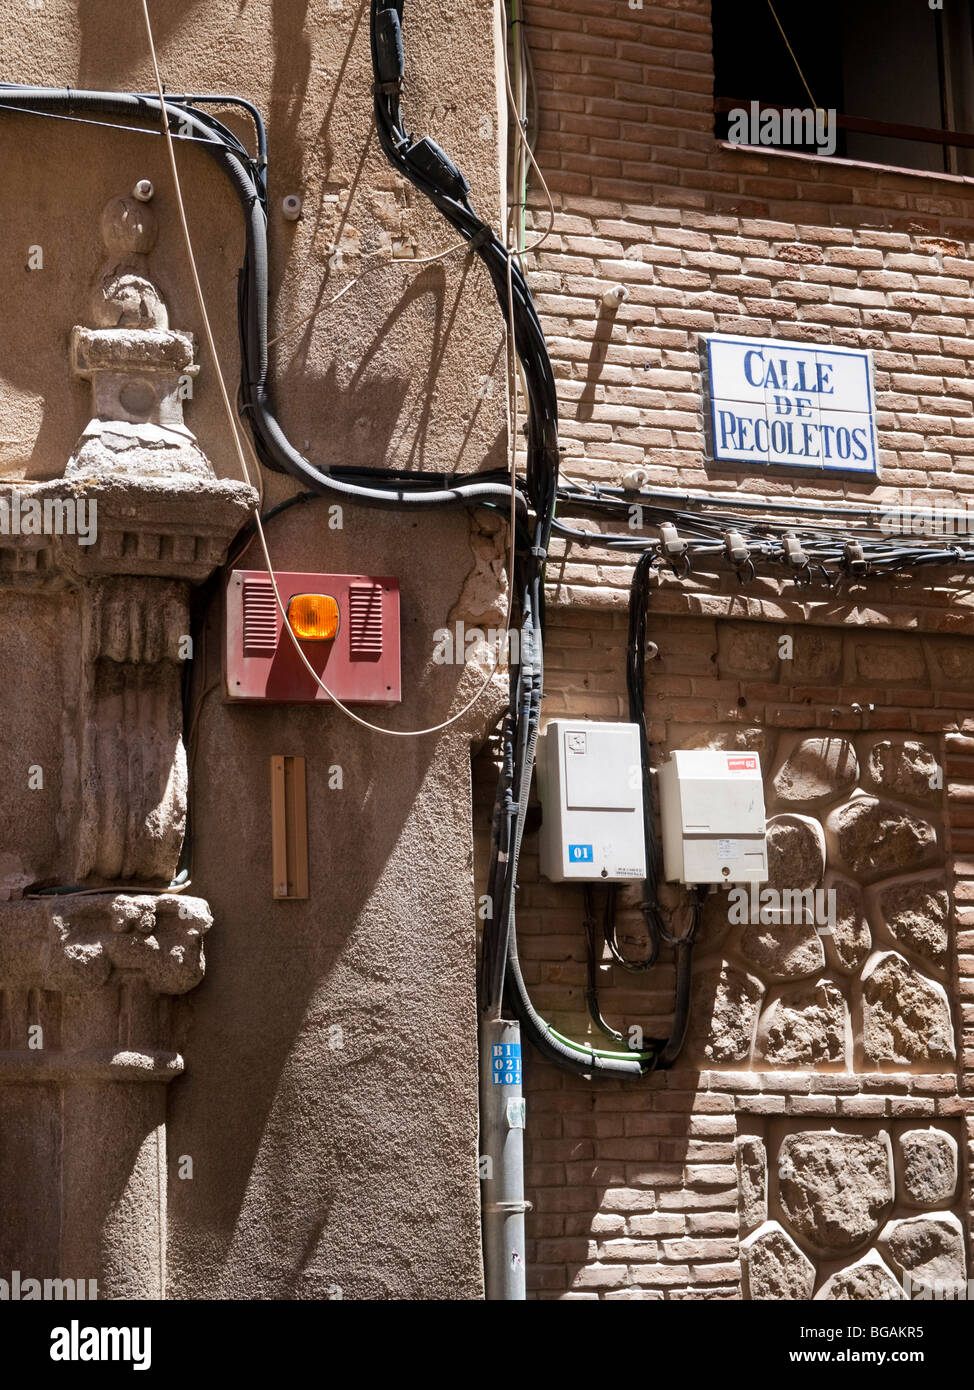 hight resolution of electric wiring outside of an old house in recoletos street toledo spain